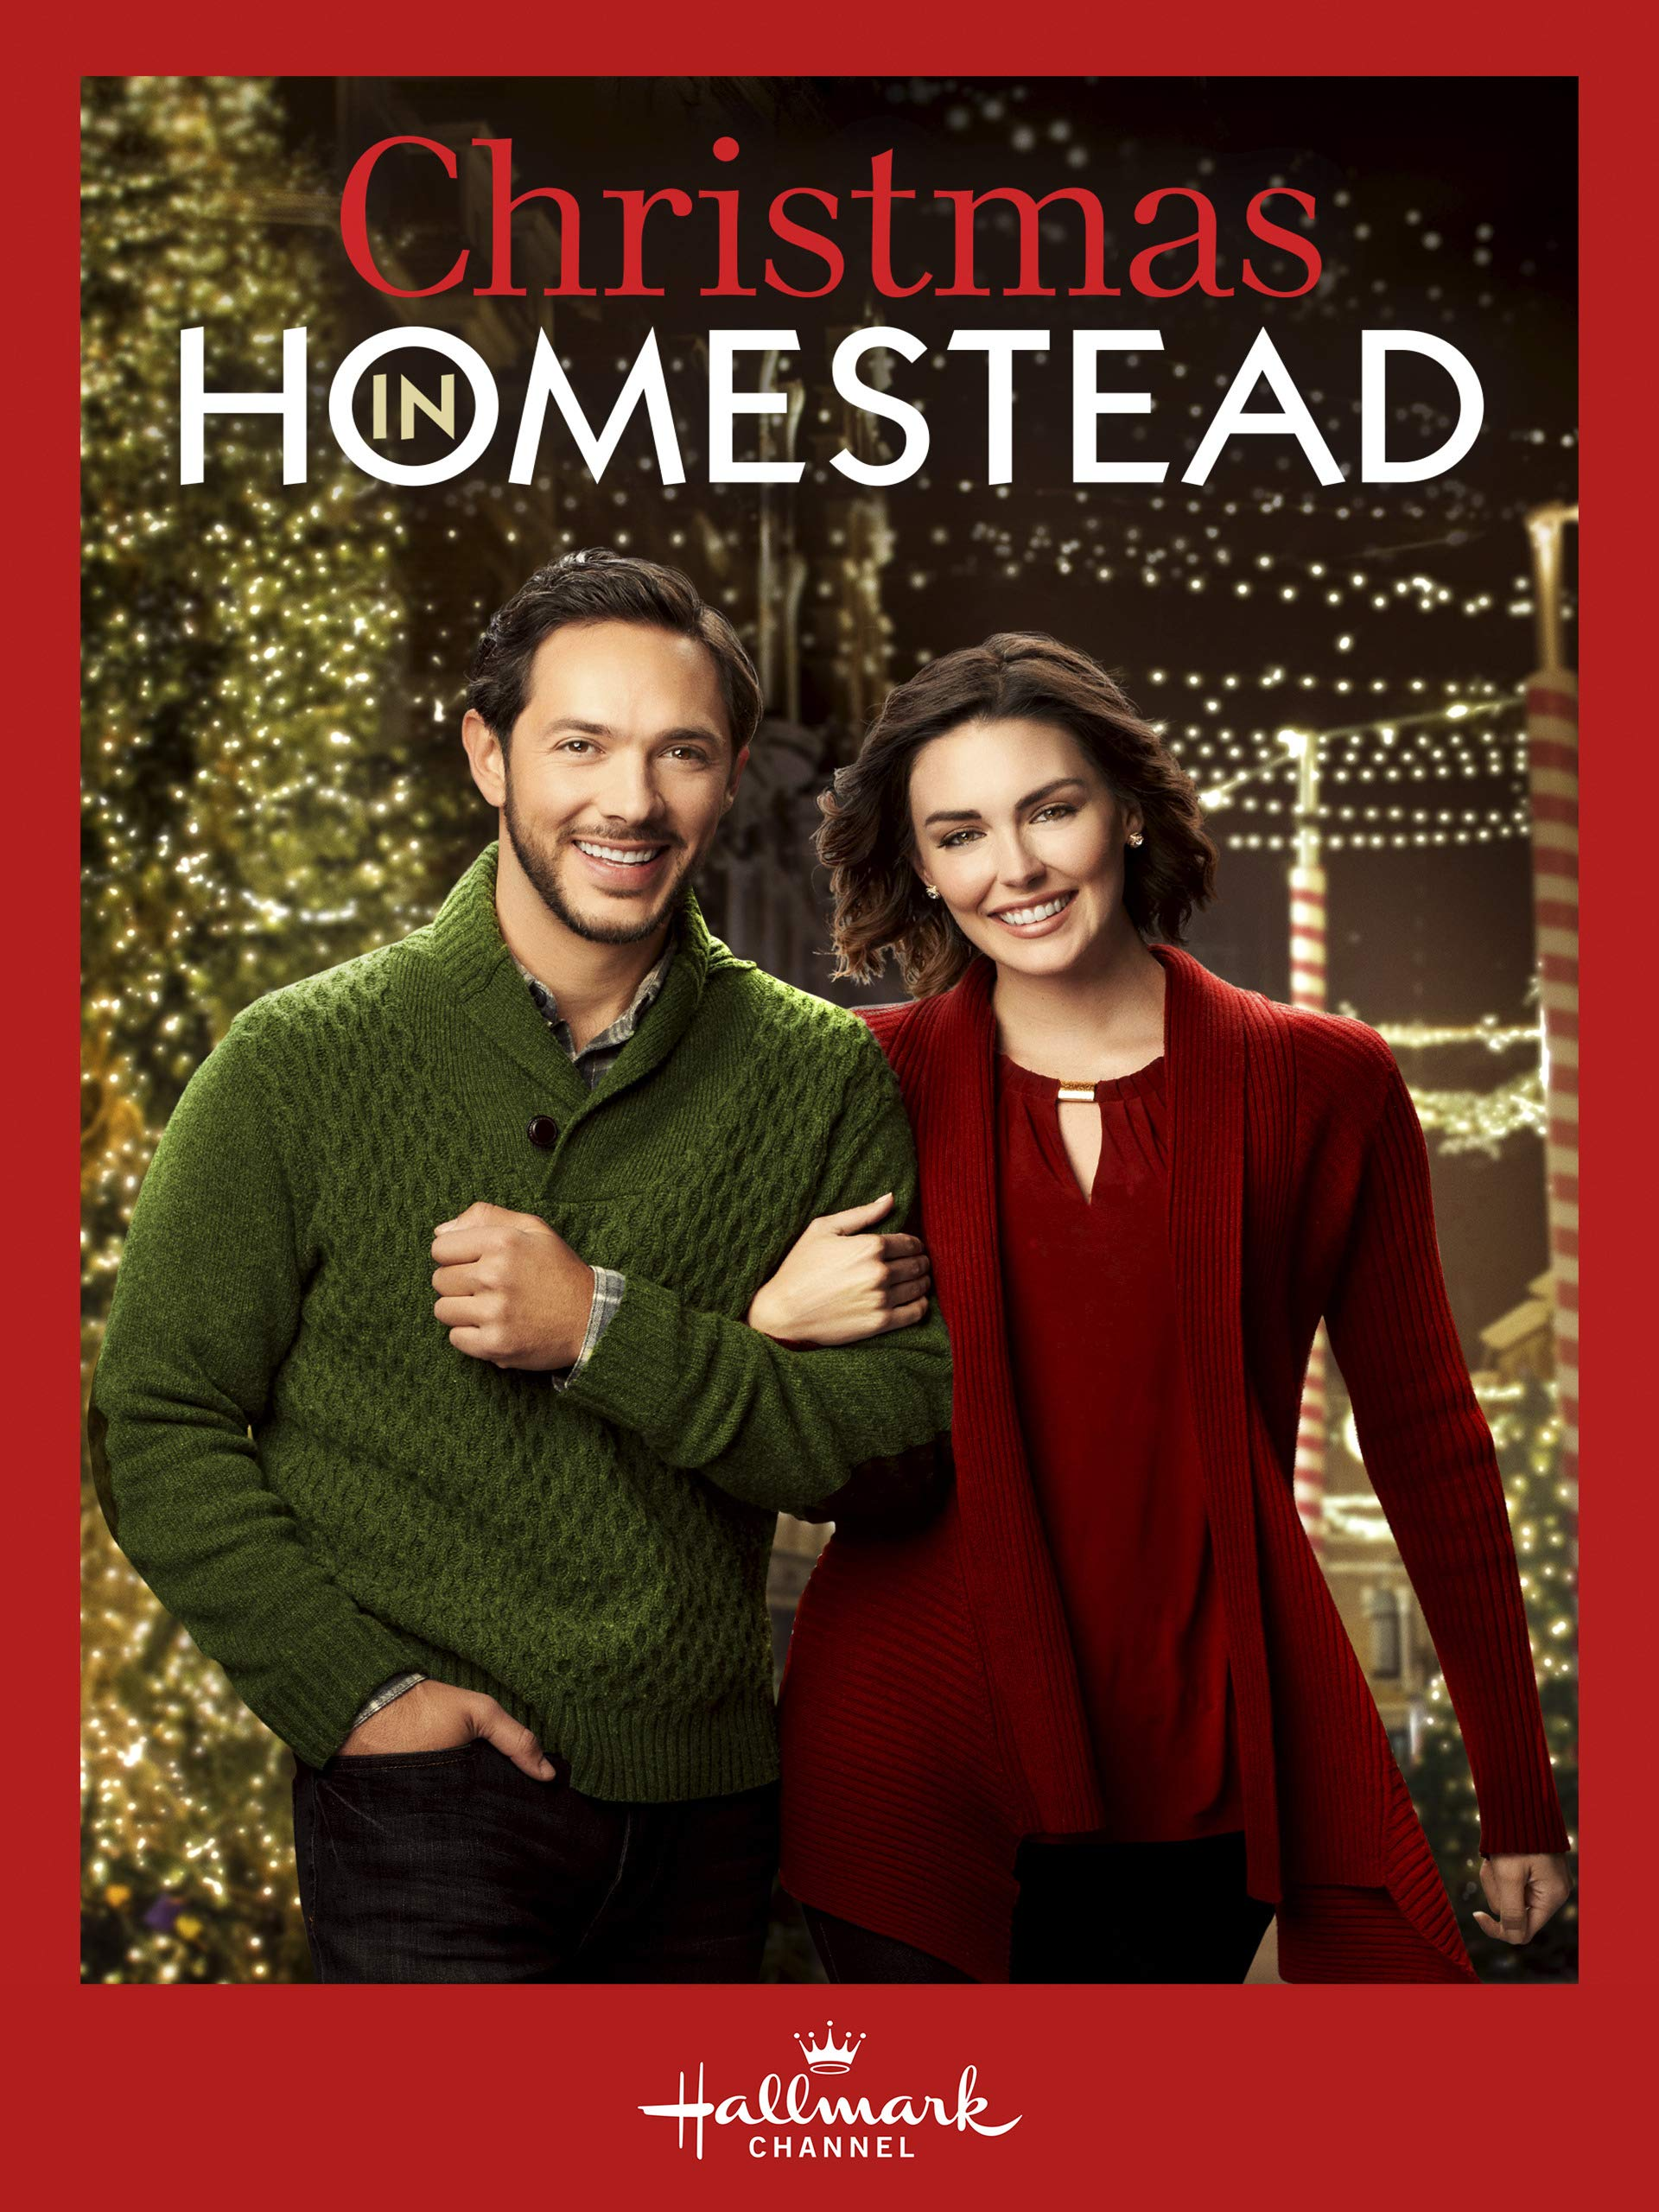 Taylor Cole Christmas In Homestead.Amazon Com Christmas In Homestead Taylor Cole Michael